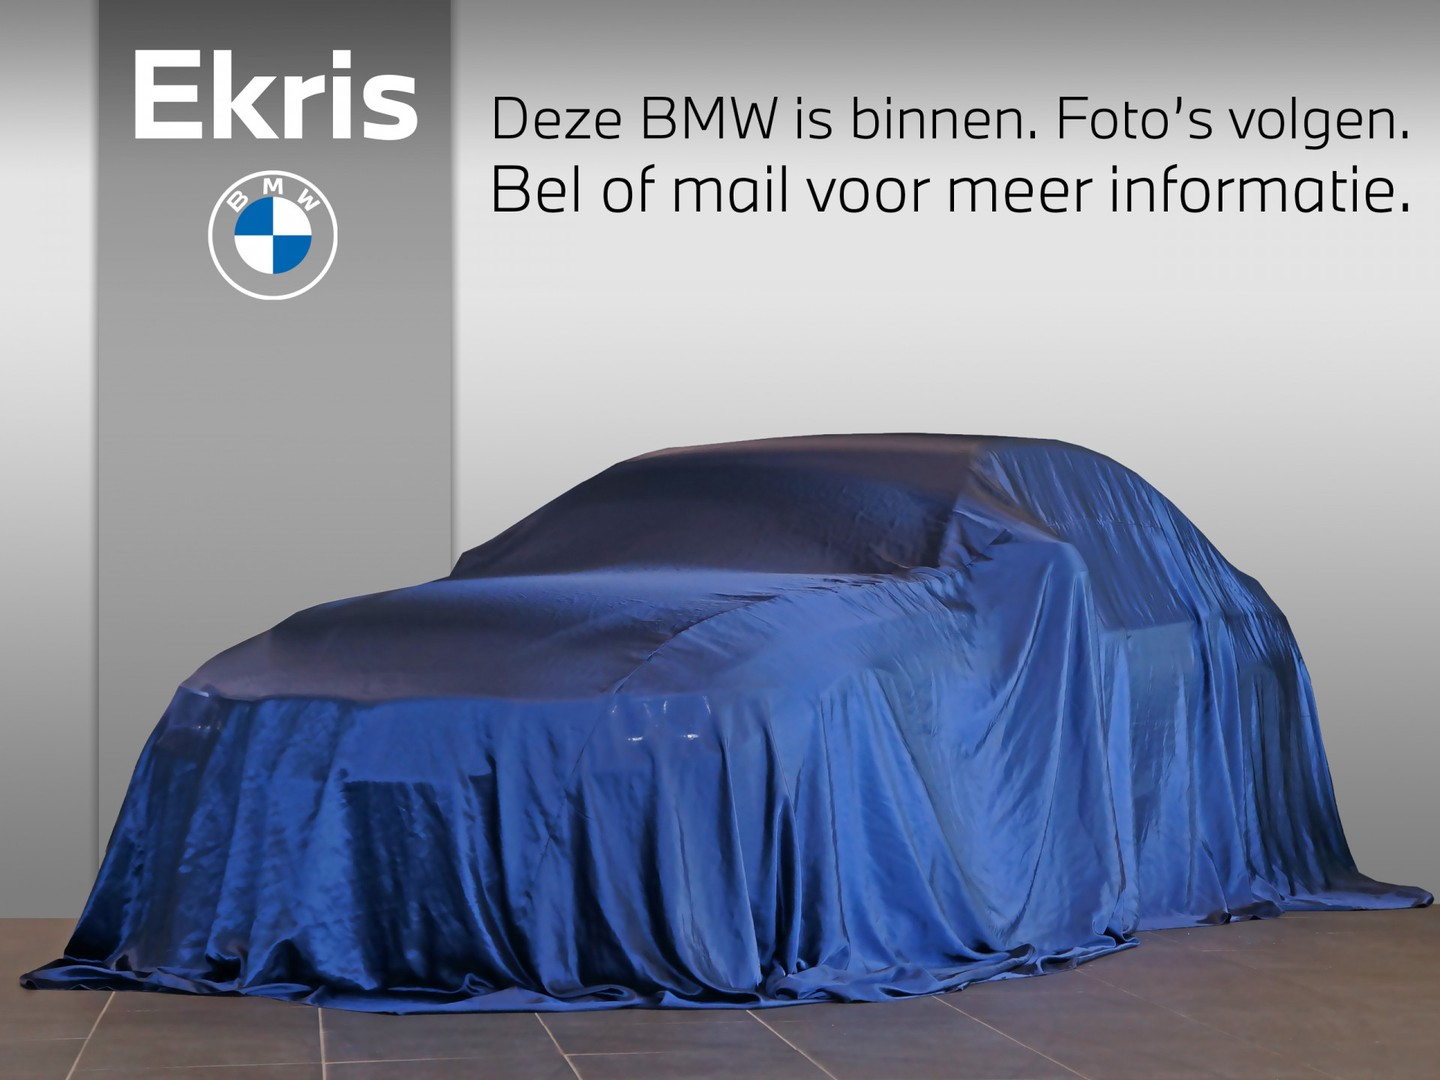 "Bmw 3 serie Touring 320i executive trekhaak / navigatie professional / climate control / cruise control / pdc / 16"" - 2 jaar garantie!!"